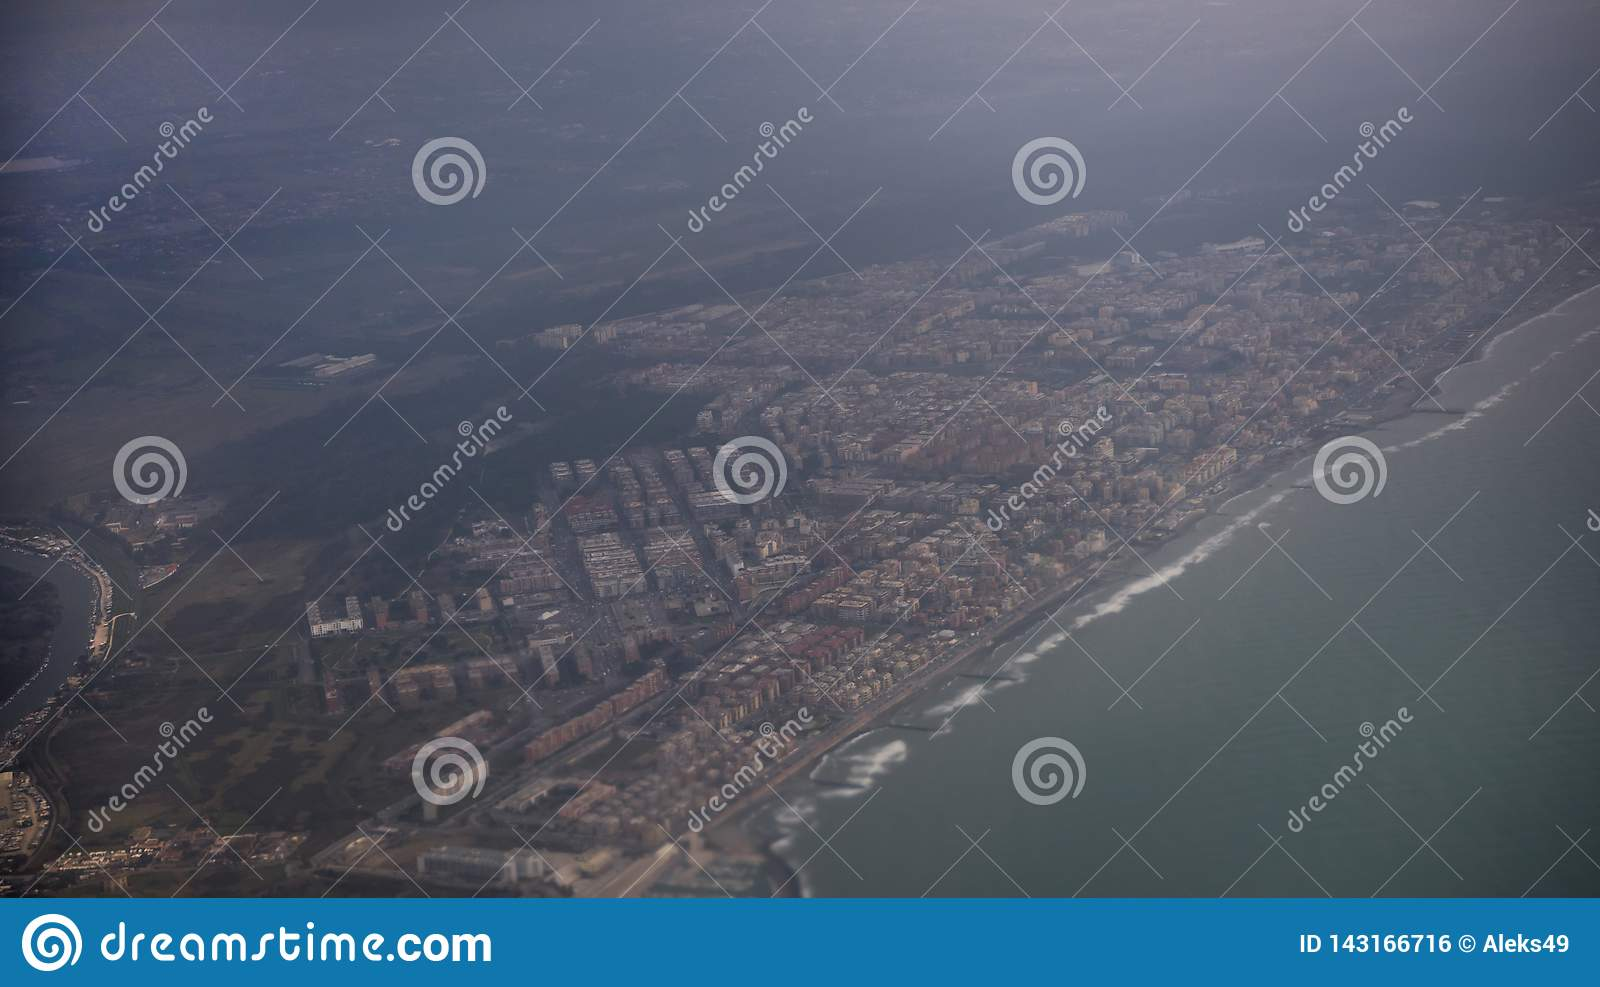 View of the city of Fiumicino from the aircraft